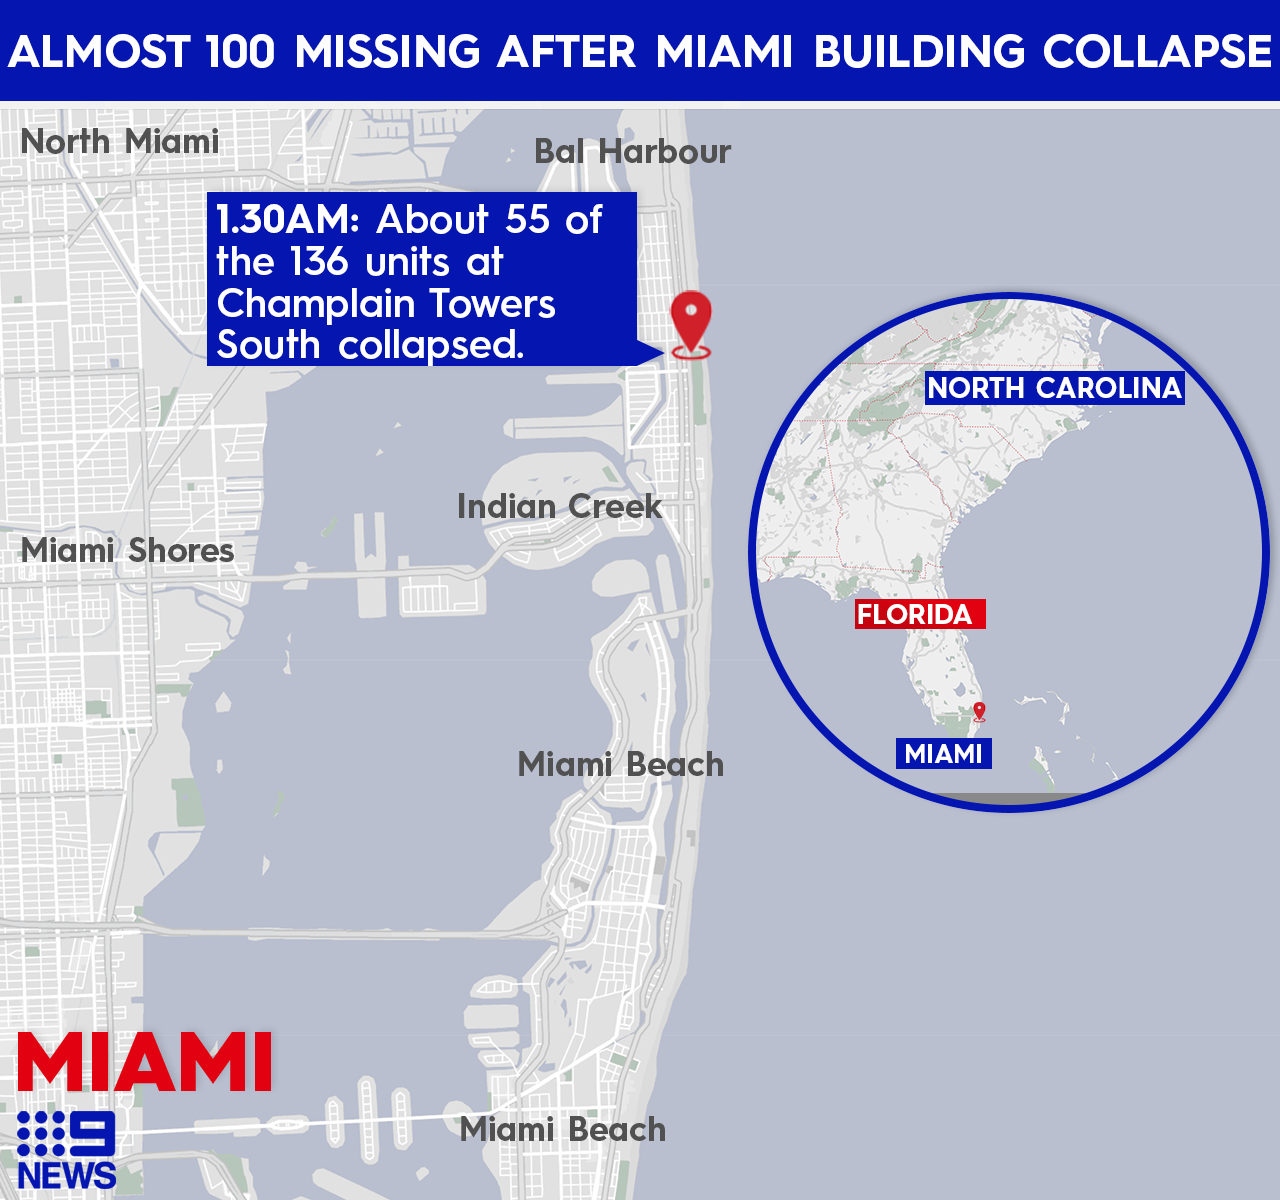 First responders in Miami have revealed they have heard banging coming from underneath the rubble, but no voices.